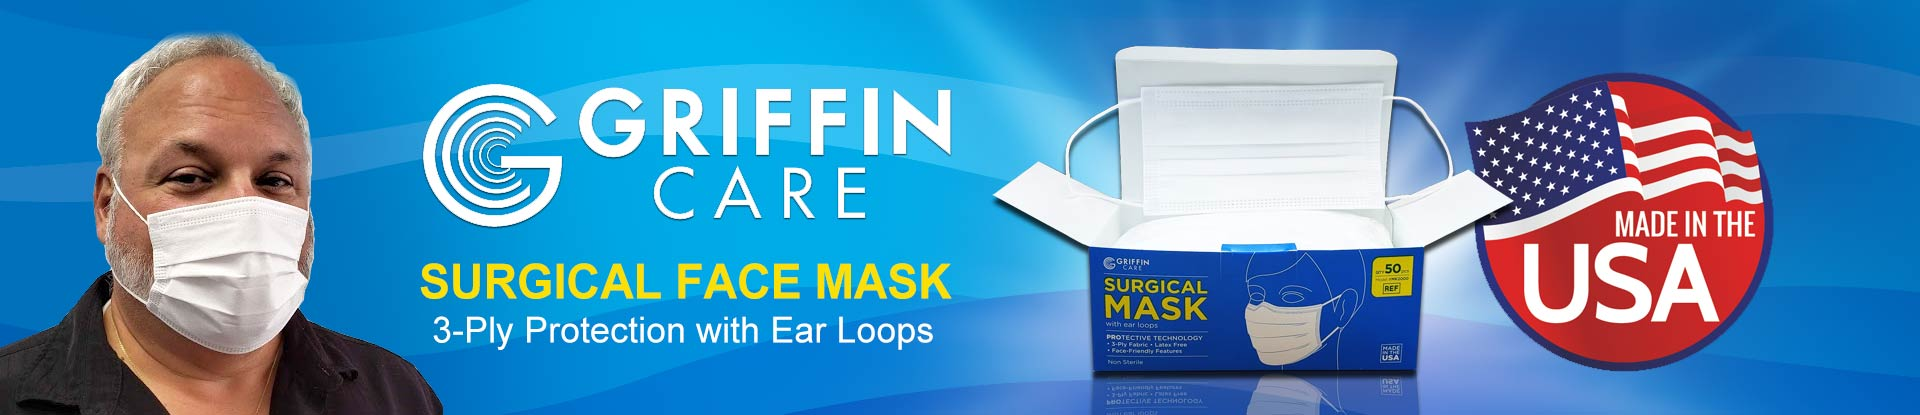 Griffin Care Surgical Face Mask with Earloops - Made in USA